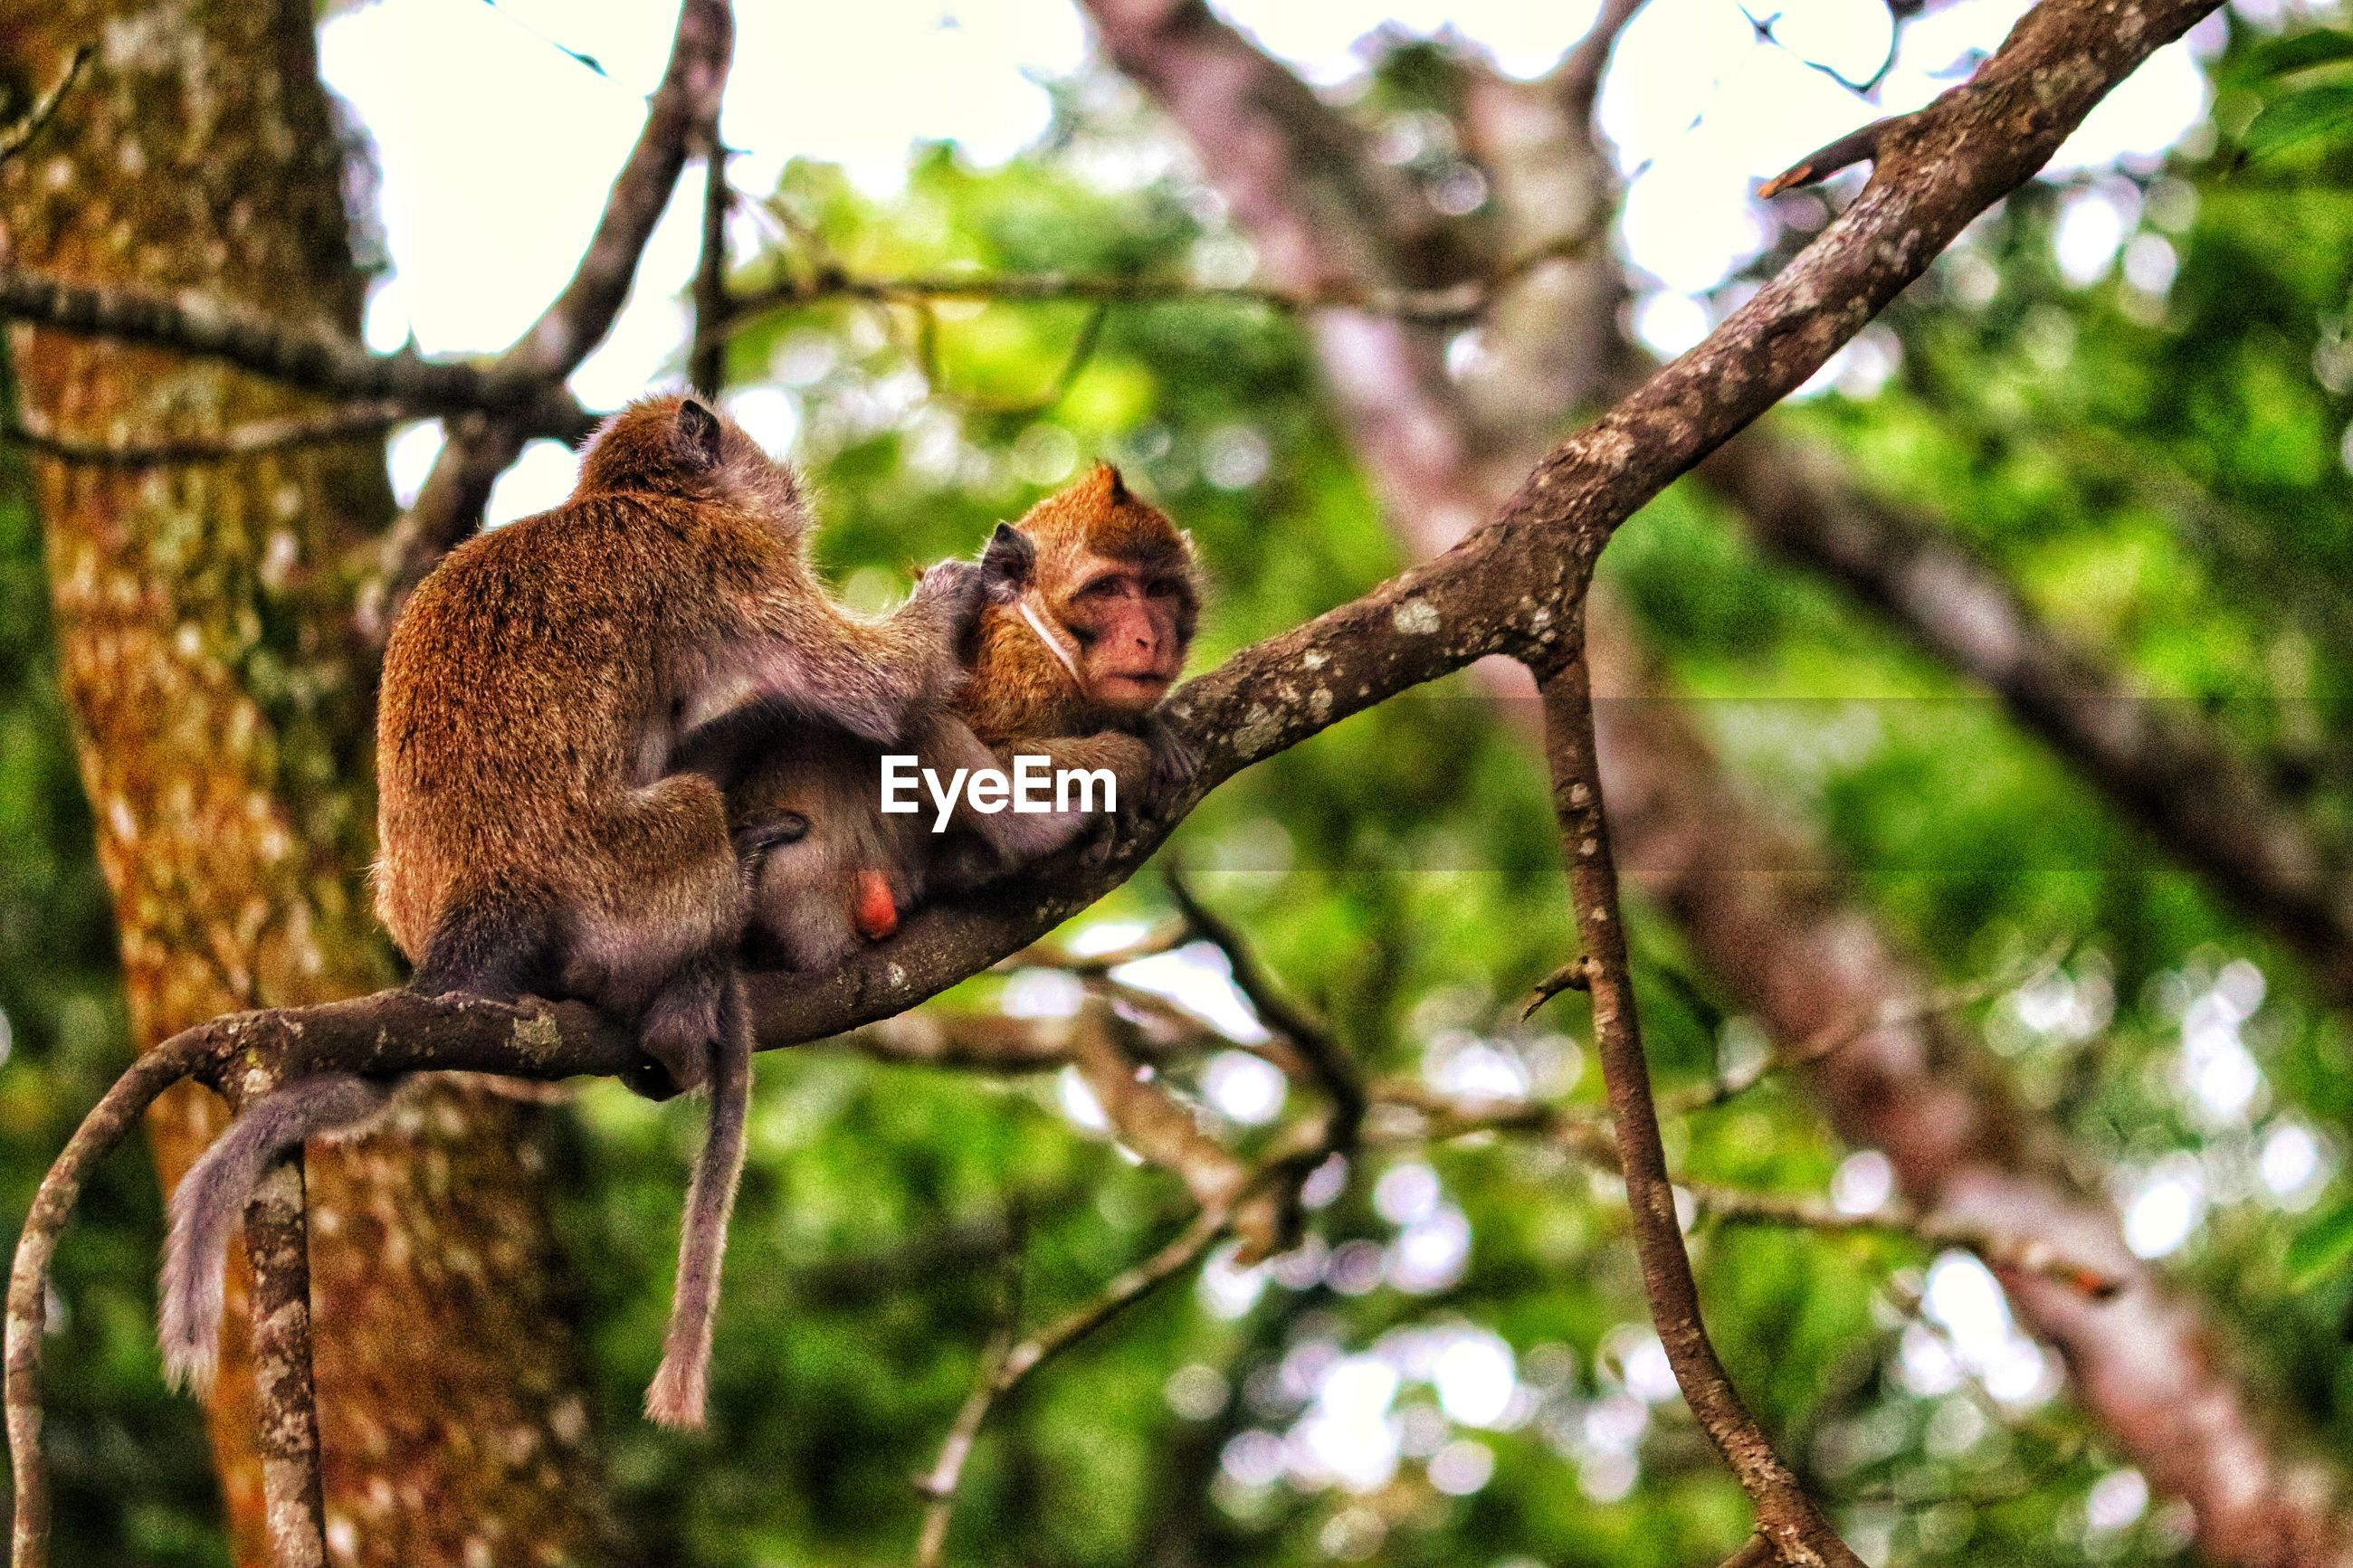 Low angle view of monkey sitting on tree in forest